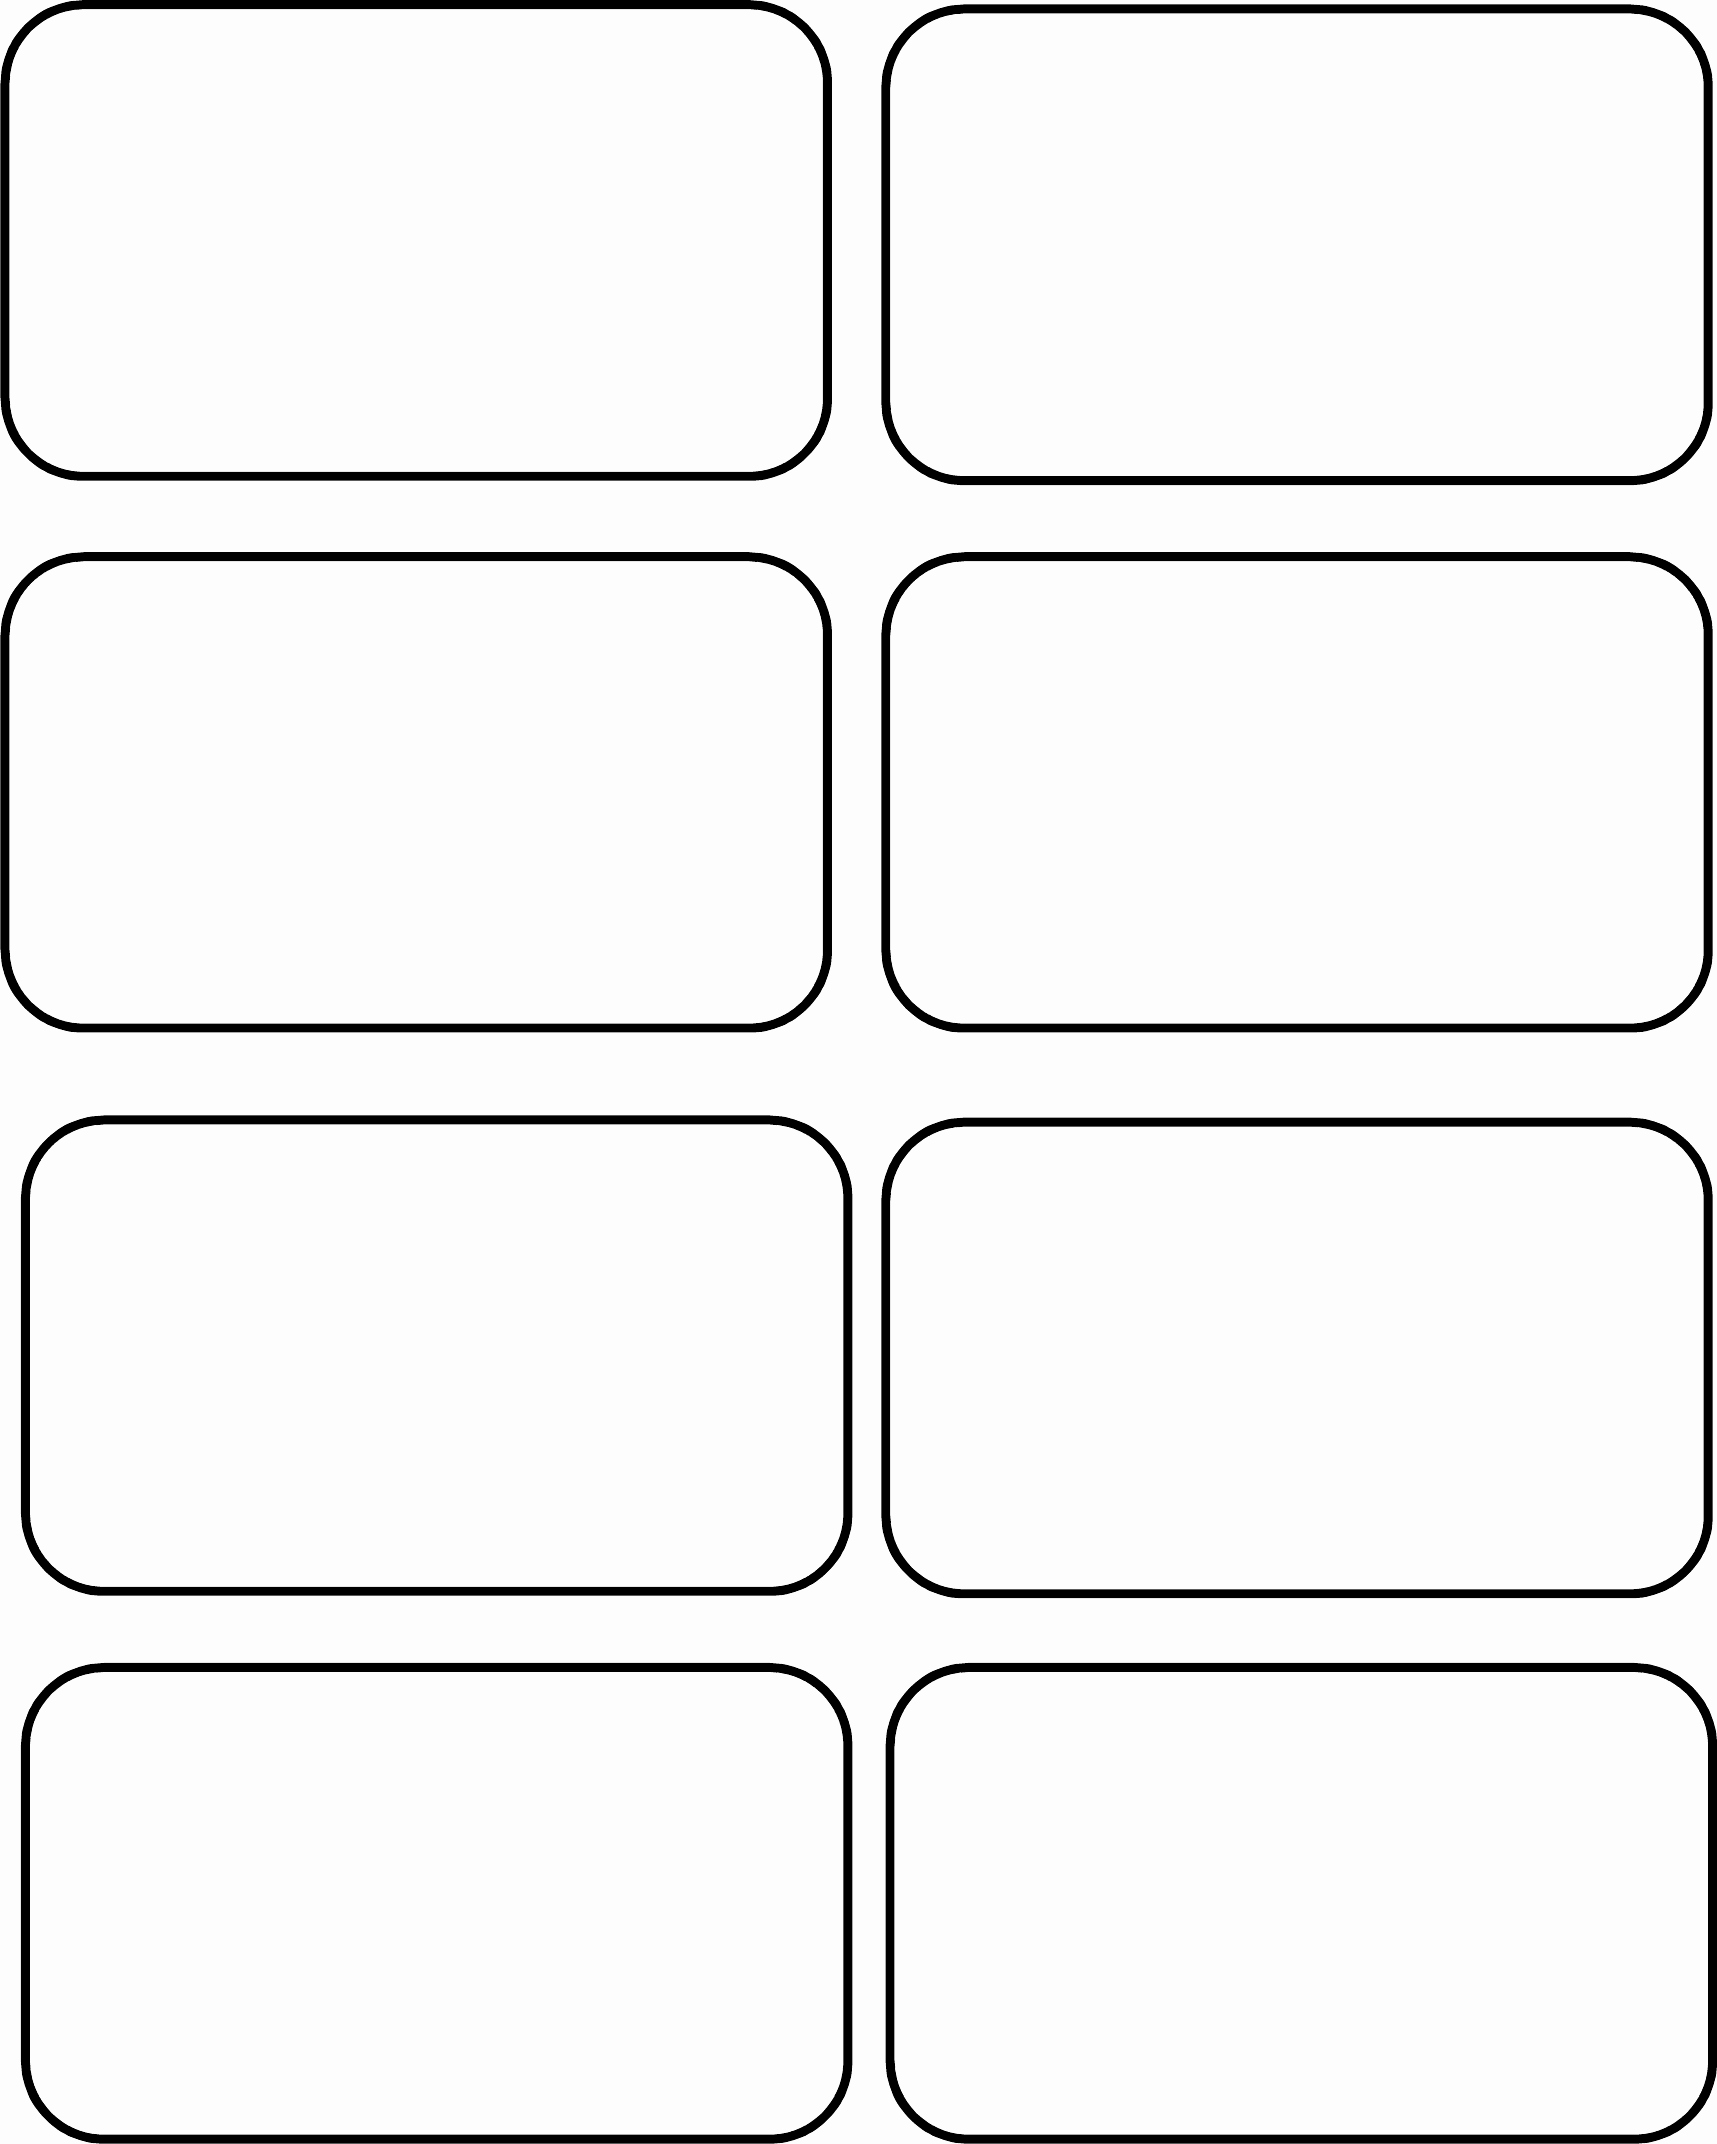 Luggage Tag Insert Template Inspirational Luggage Tag Template Free Clipart Best